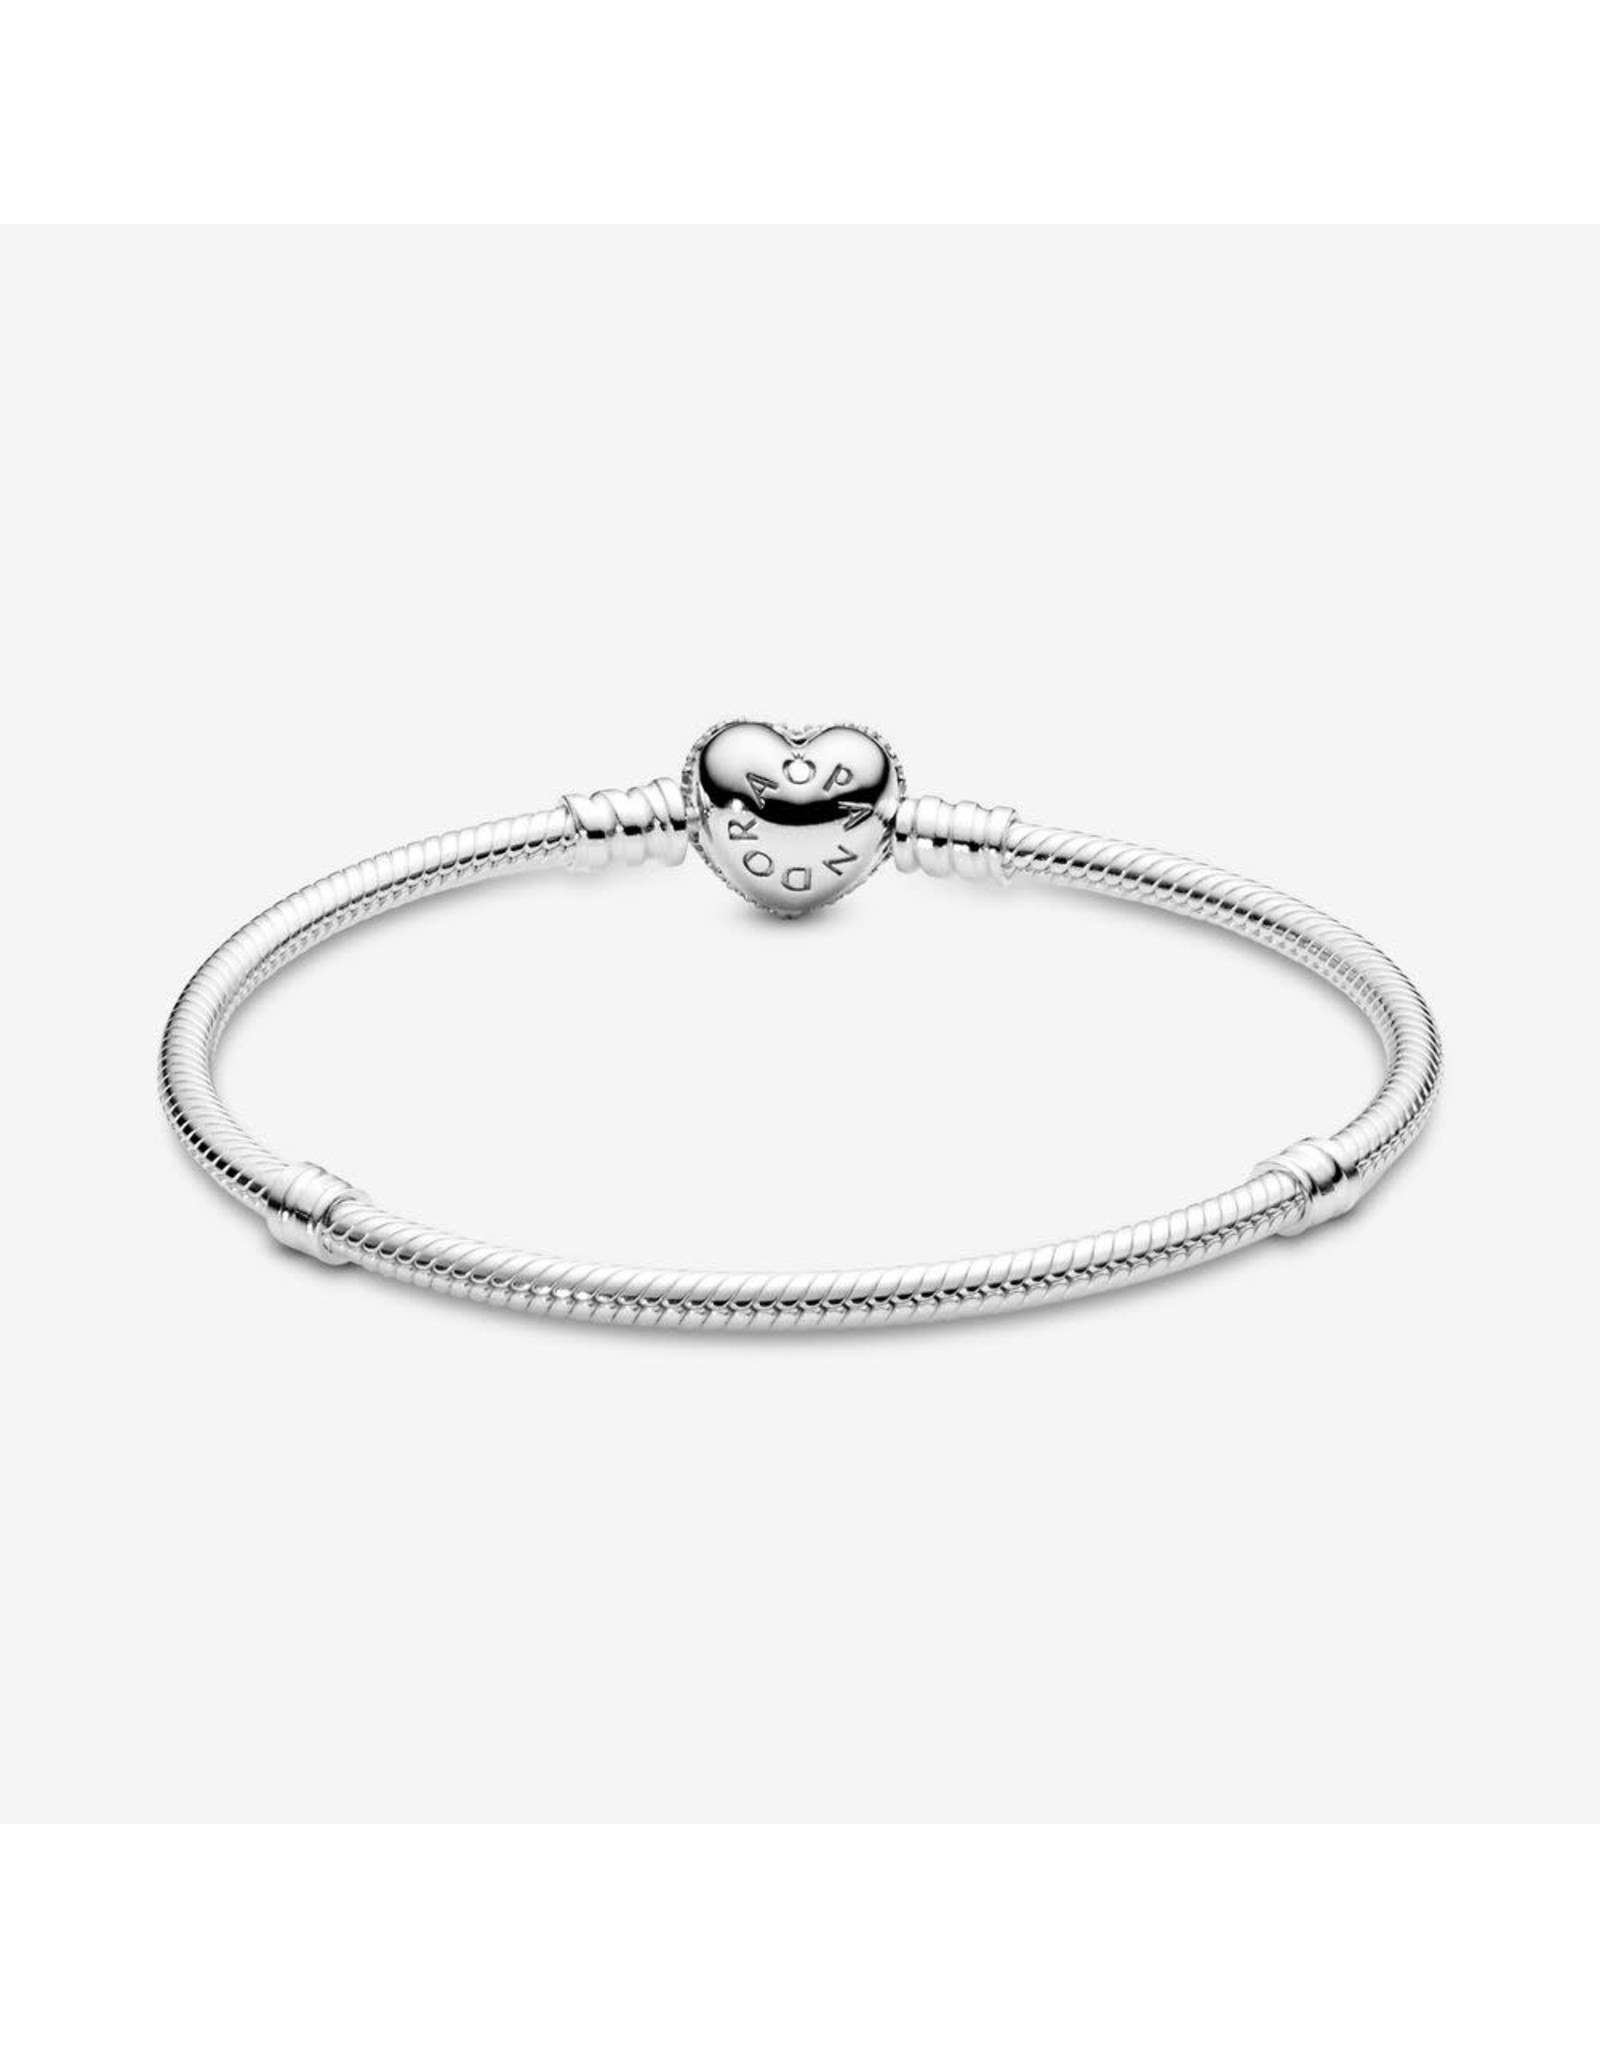 Pandora Pandora Bracelet,590727CZ,  Silver Chain  With Heart Shaped-Clasp Pavé Heart With Clear Cubic Zirconia